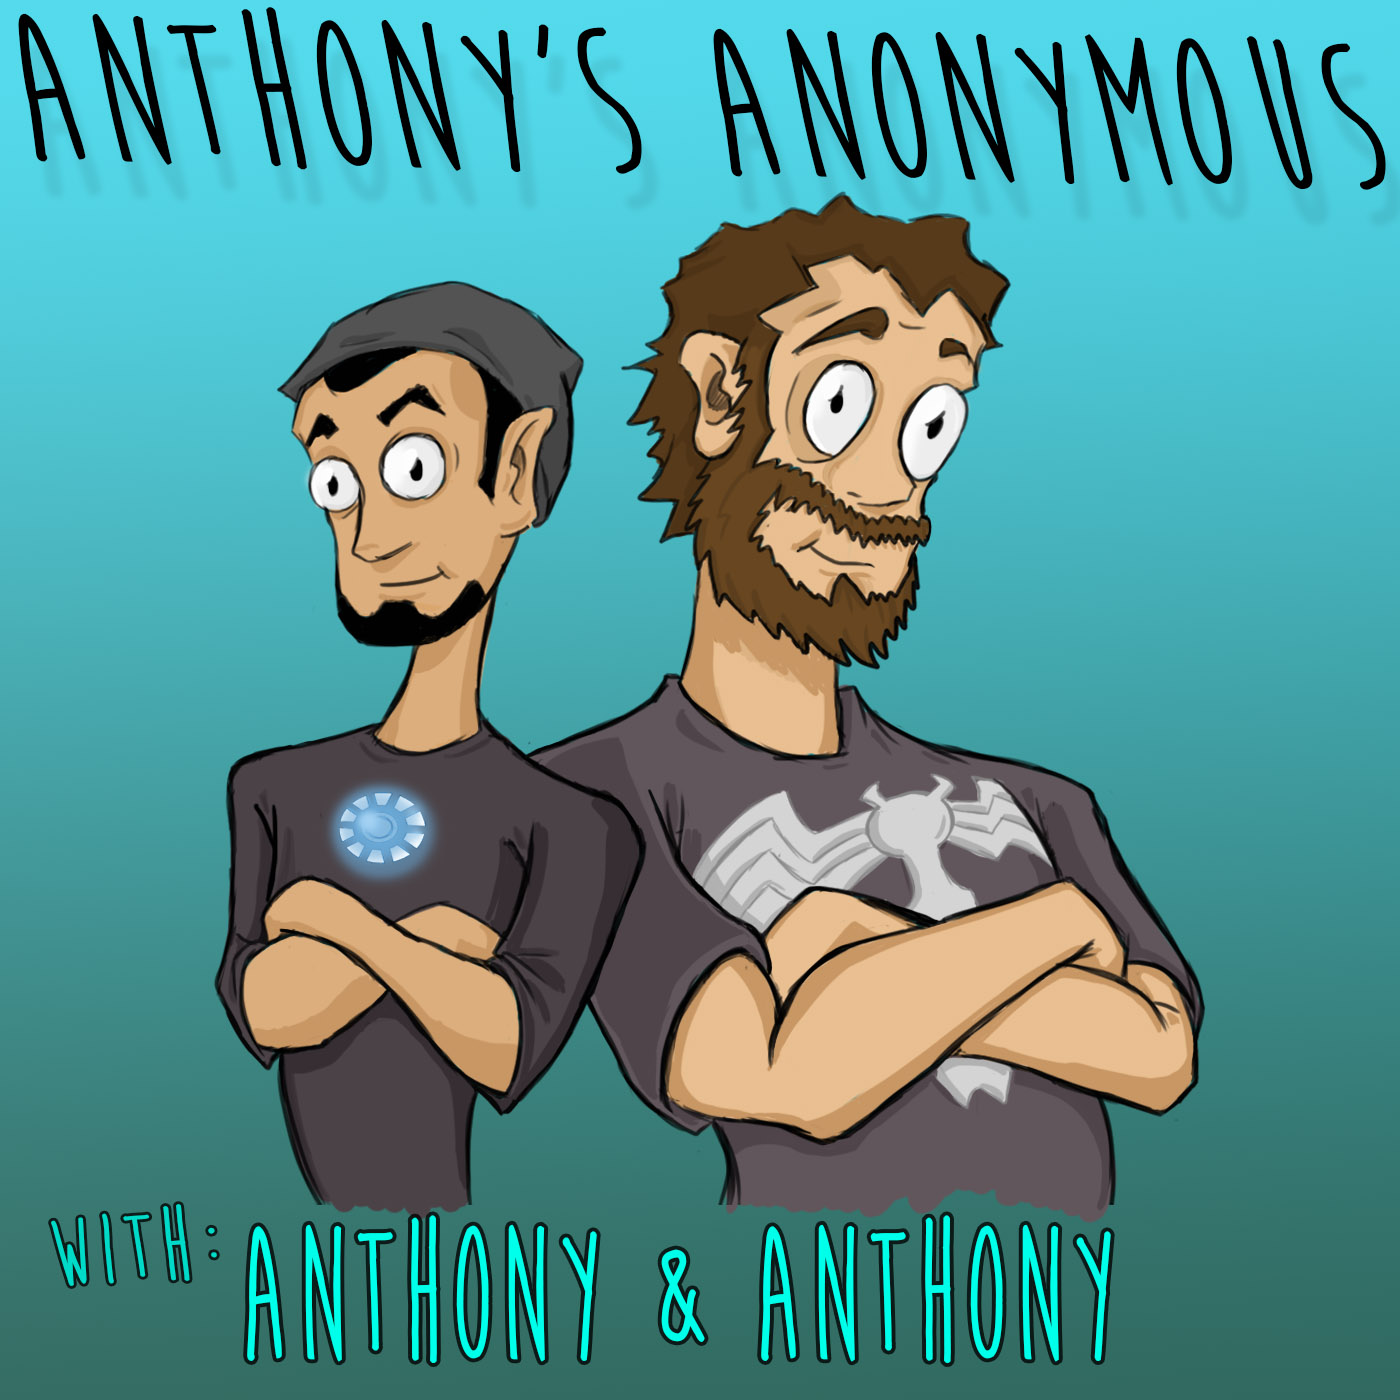 Anthony's Anonymous